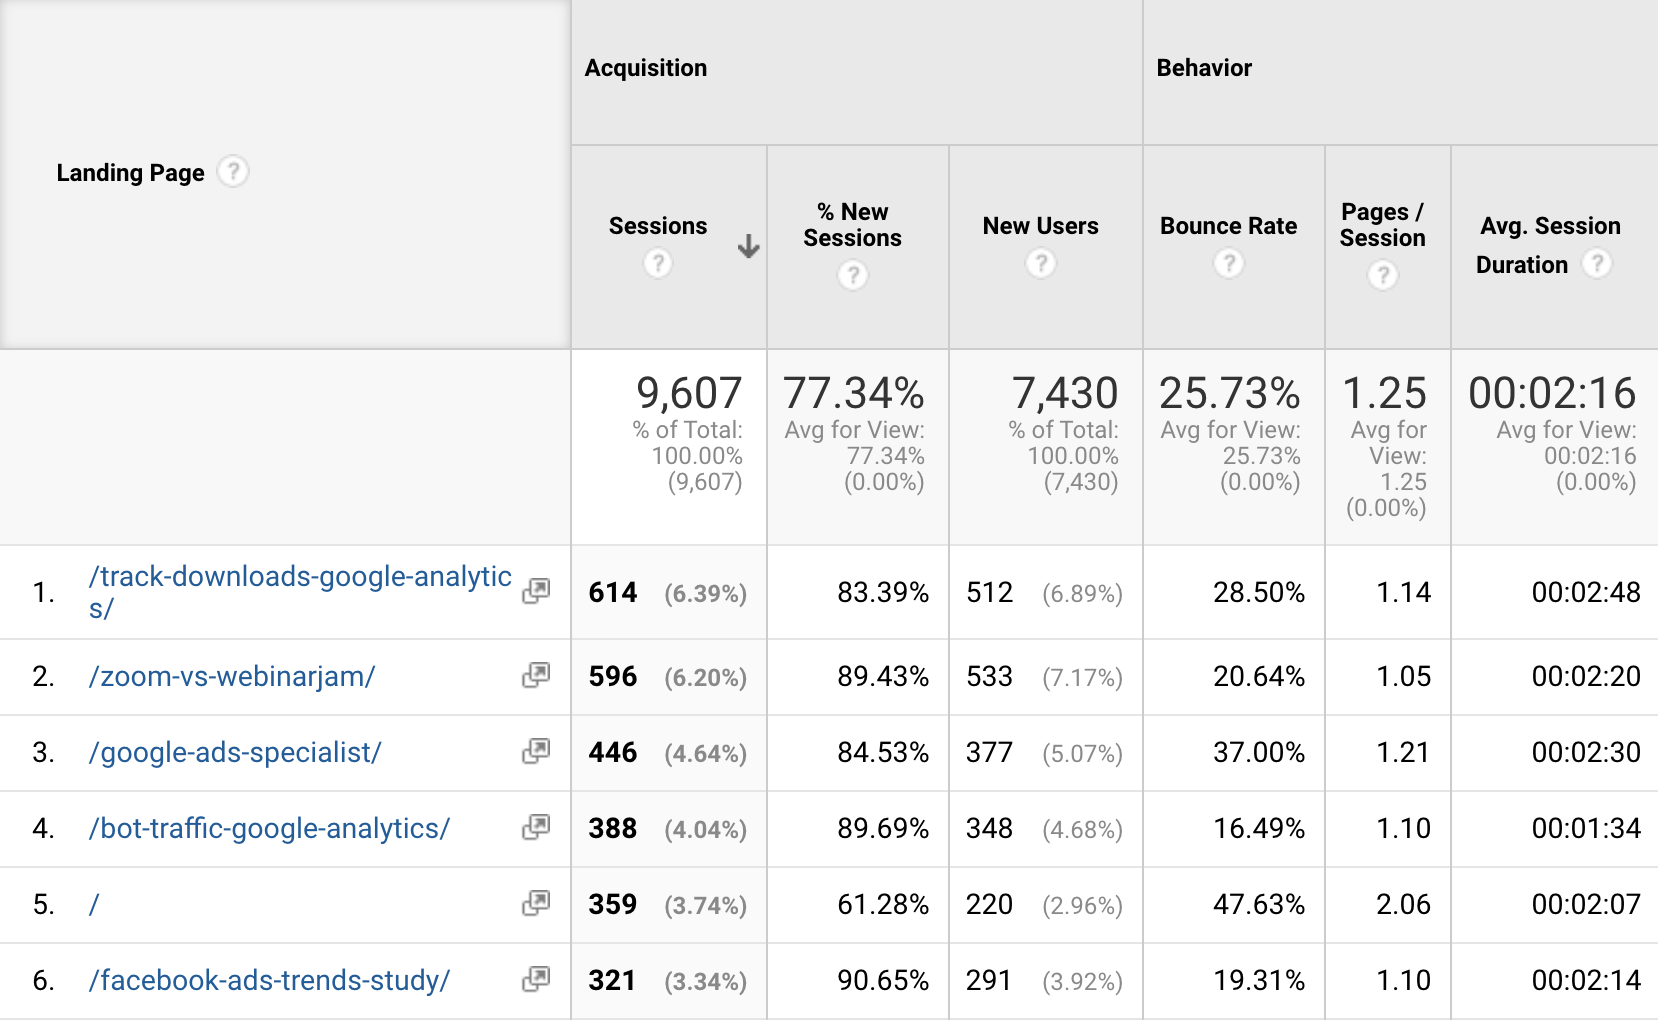 Google Analytics Behavior Data